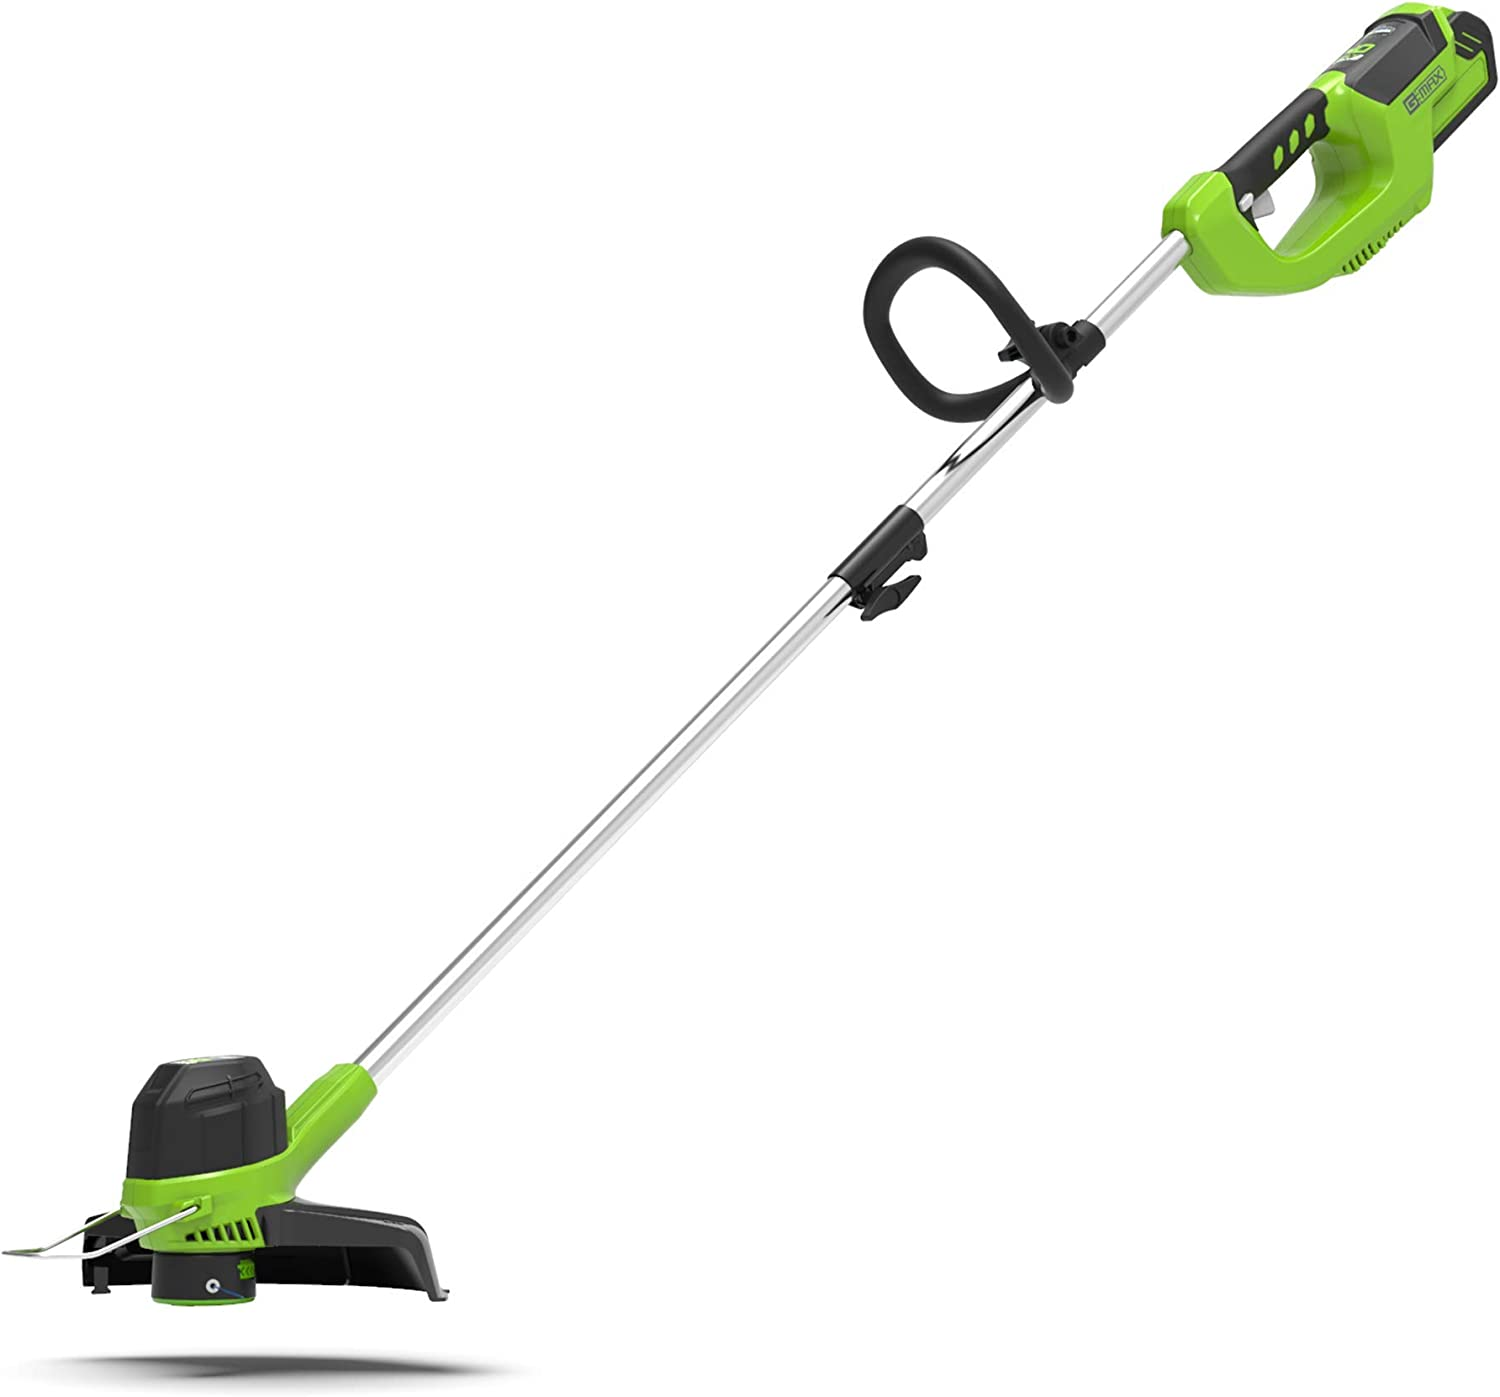 Greenworks Tools Cordless Grass Trimmer G40LT (Li-Ion 40 V 30 cm Cutting Width 7000 RPM Adjustable Handle Aluminium Guide Rail Flowerguard Without Battery and Charger)